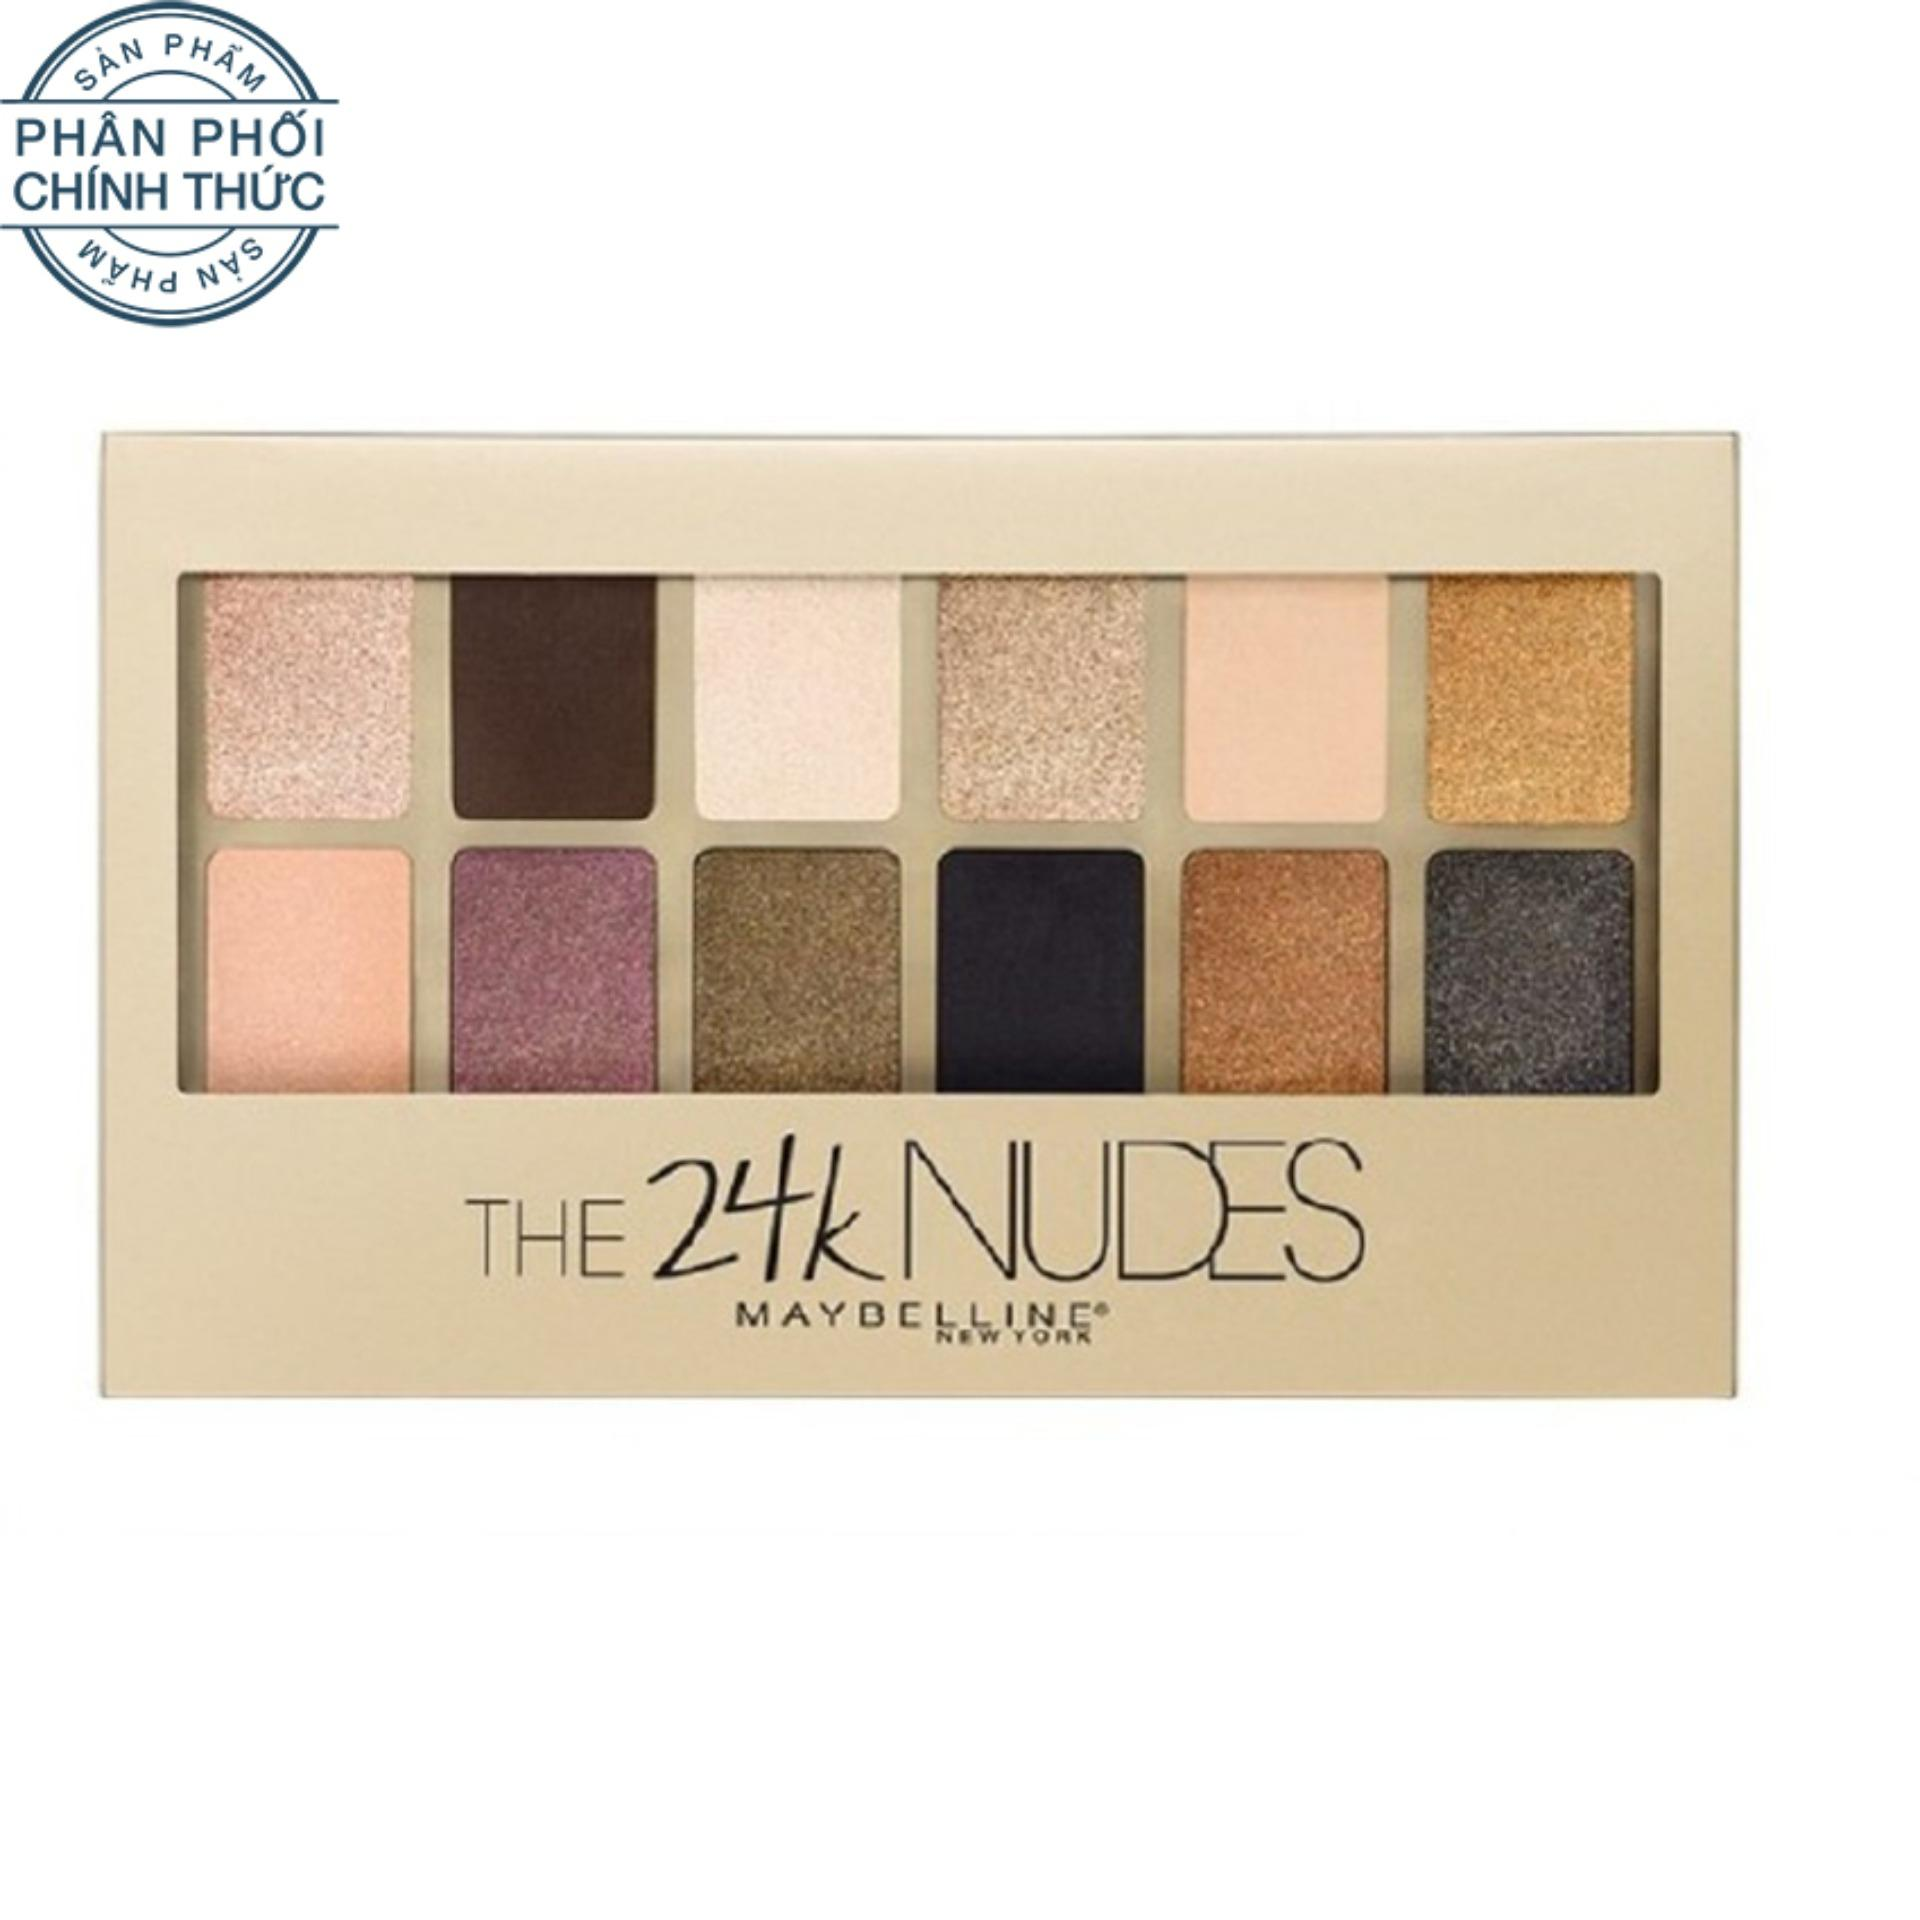 Bảng Phấn Mắt Maybelline New York The N*d*s Palette 12 Mau 9G Tong Anh Kim Rẻ